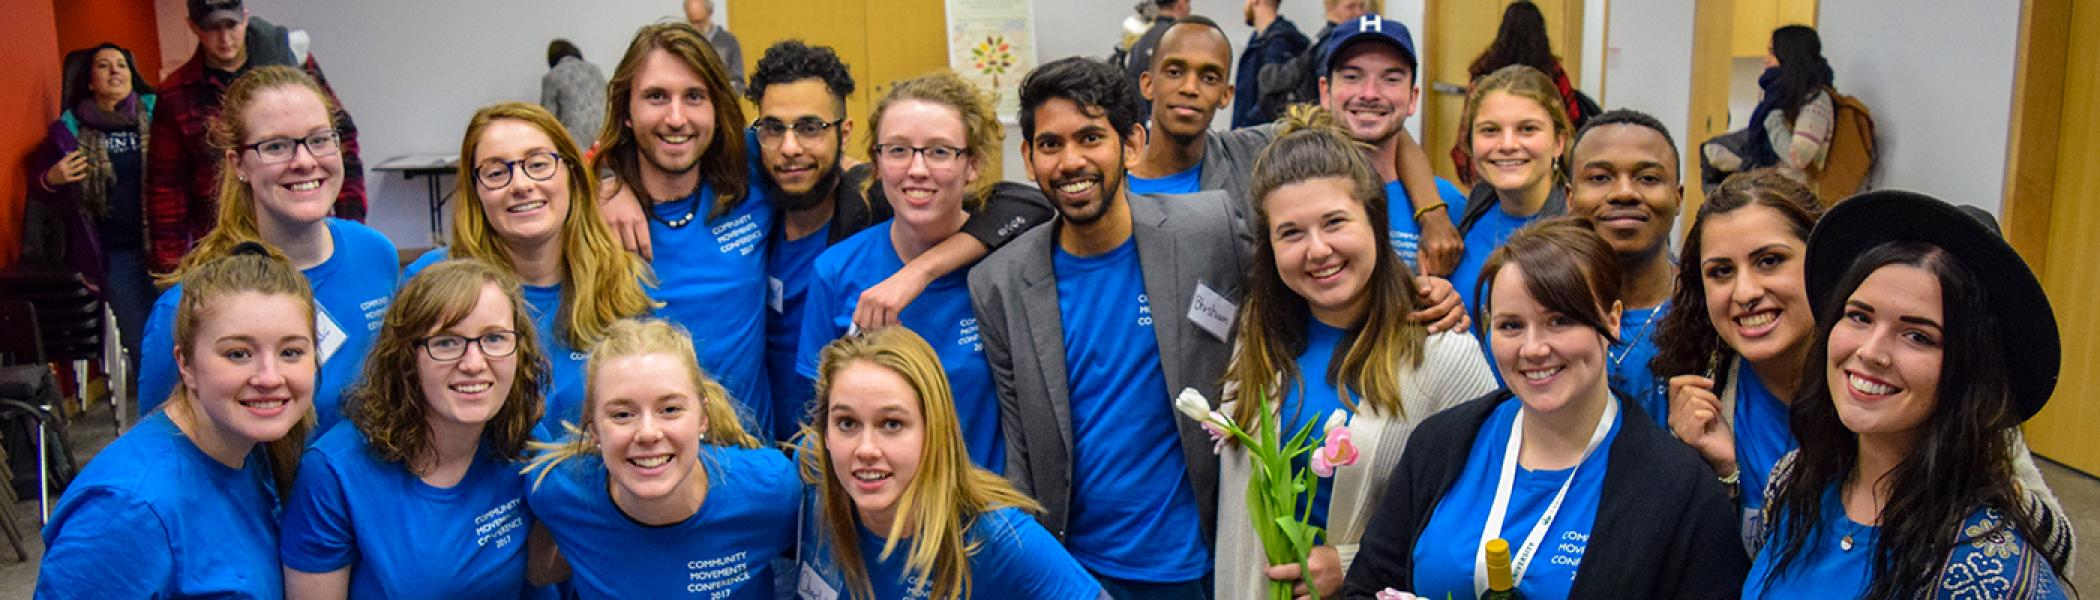 A group of students huddles together in a classroom, wearing blue t-shirts, smiling at the camera